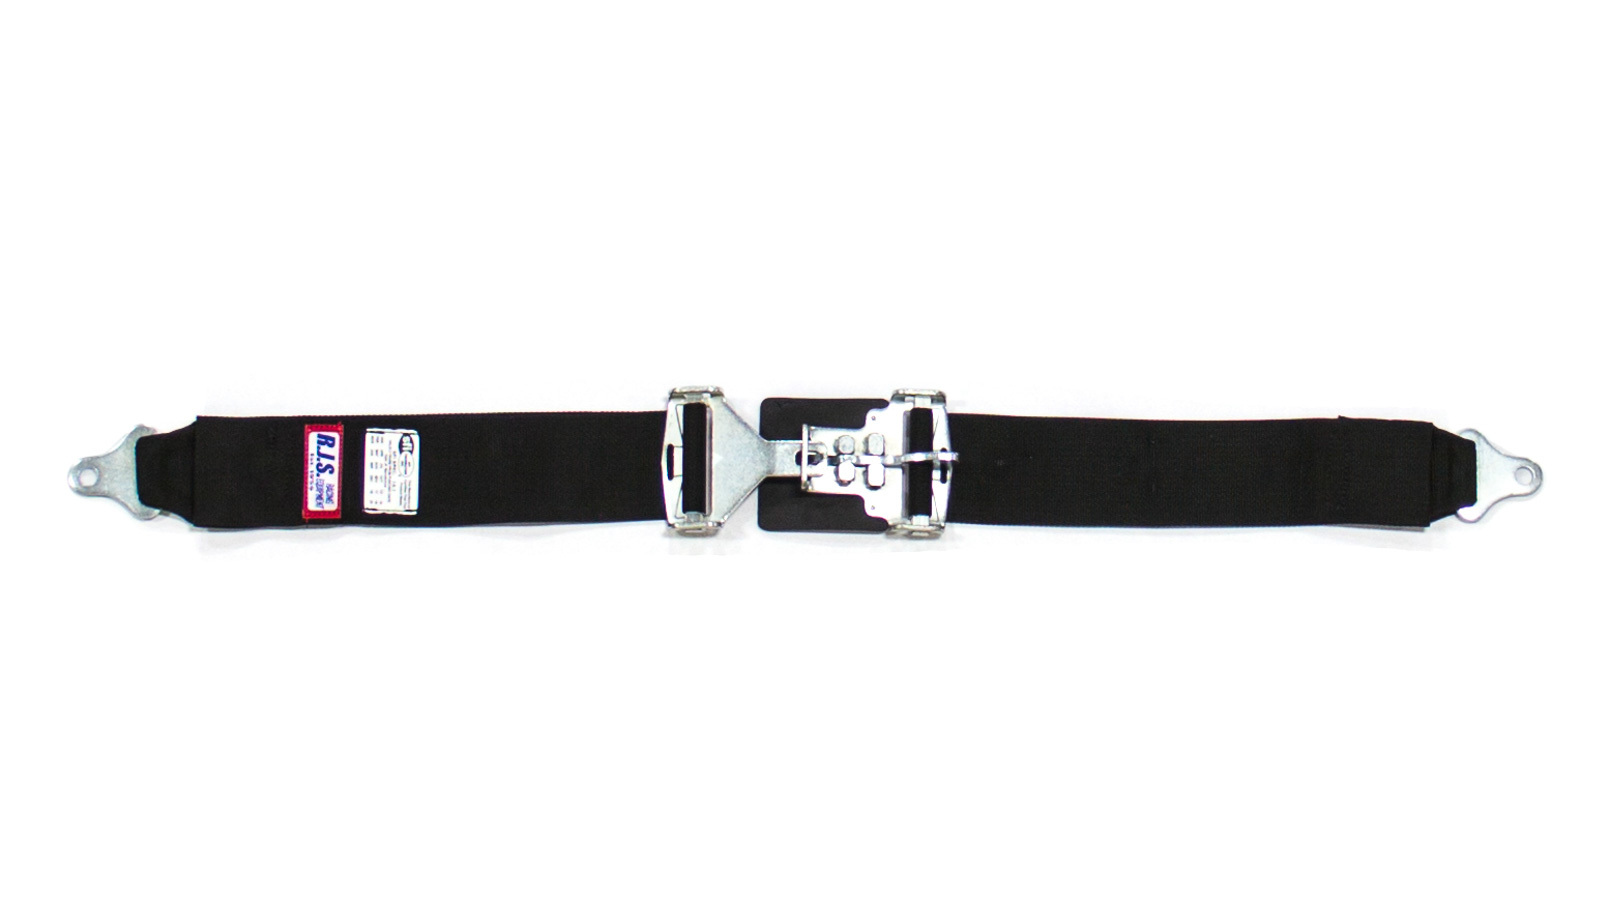 RJS Safety 15001901 Lap Harness, Latch and Link, SFI 16.1, 64 in Length, 3 in Width, Pull Down Adjust, Bolt-On, Black, Each